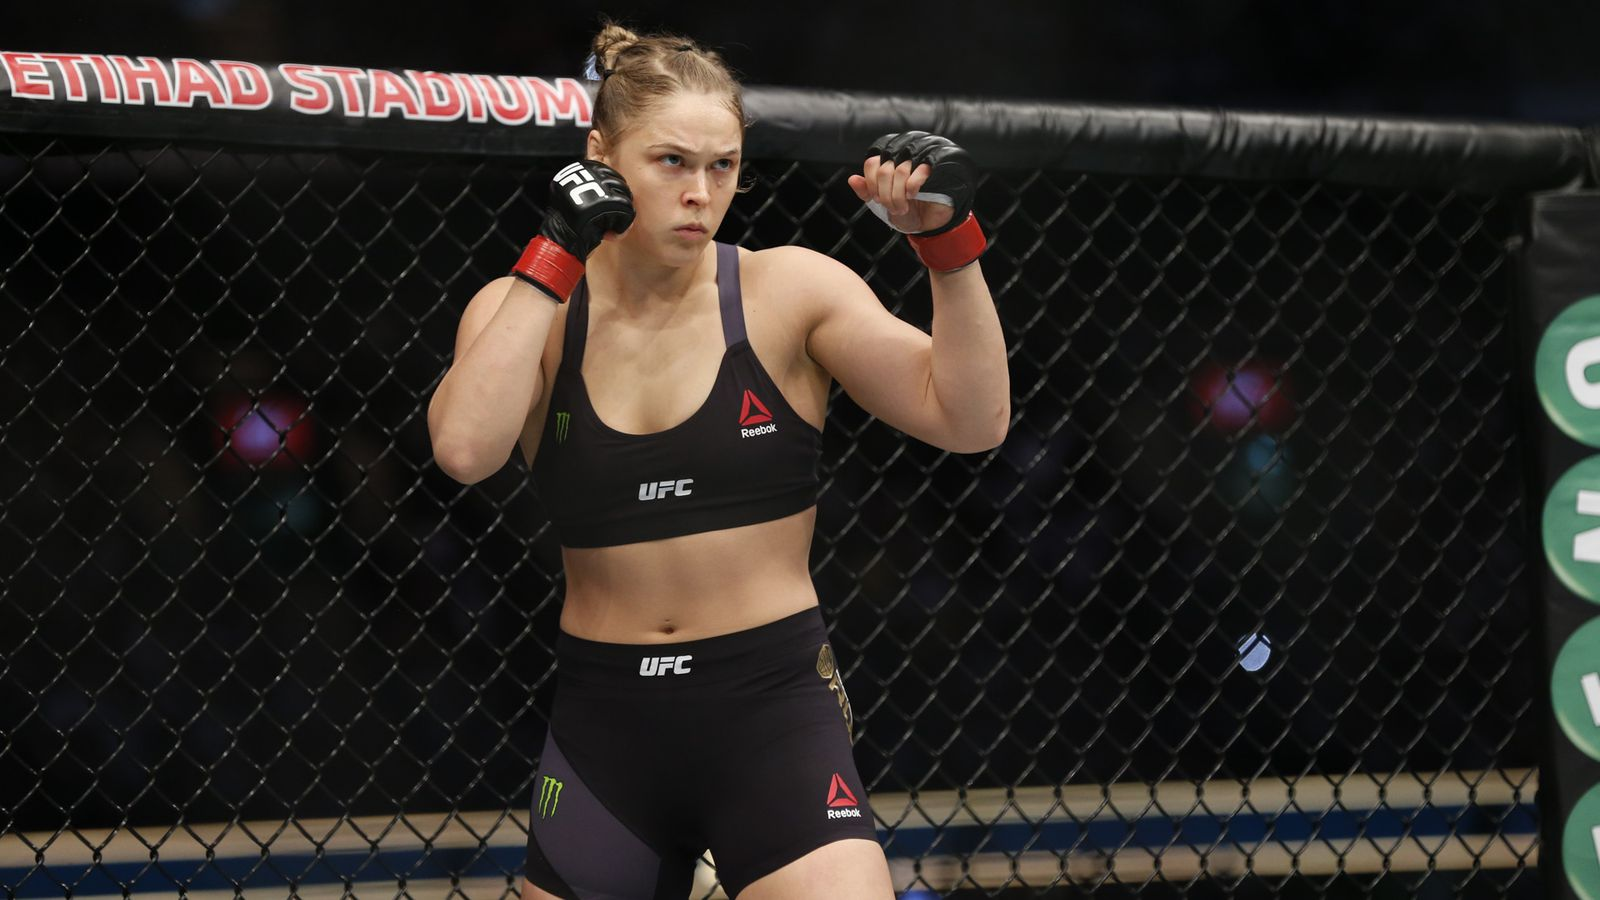 Ronda Rousey opens up as 2-to-1 betting favorite over Amanda Nunes